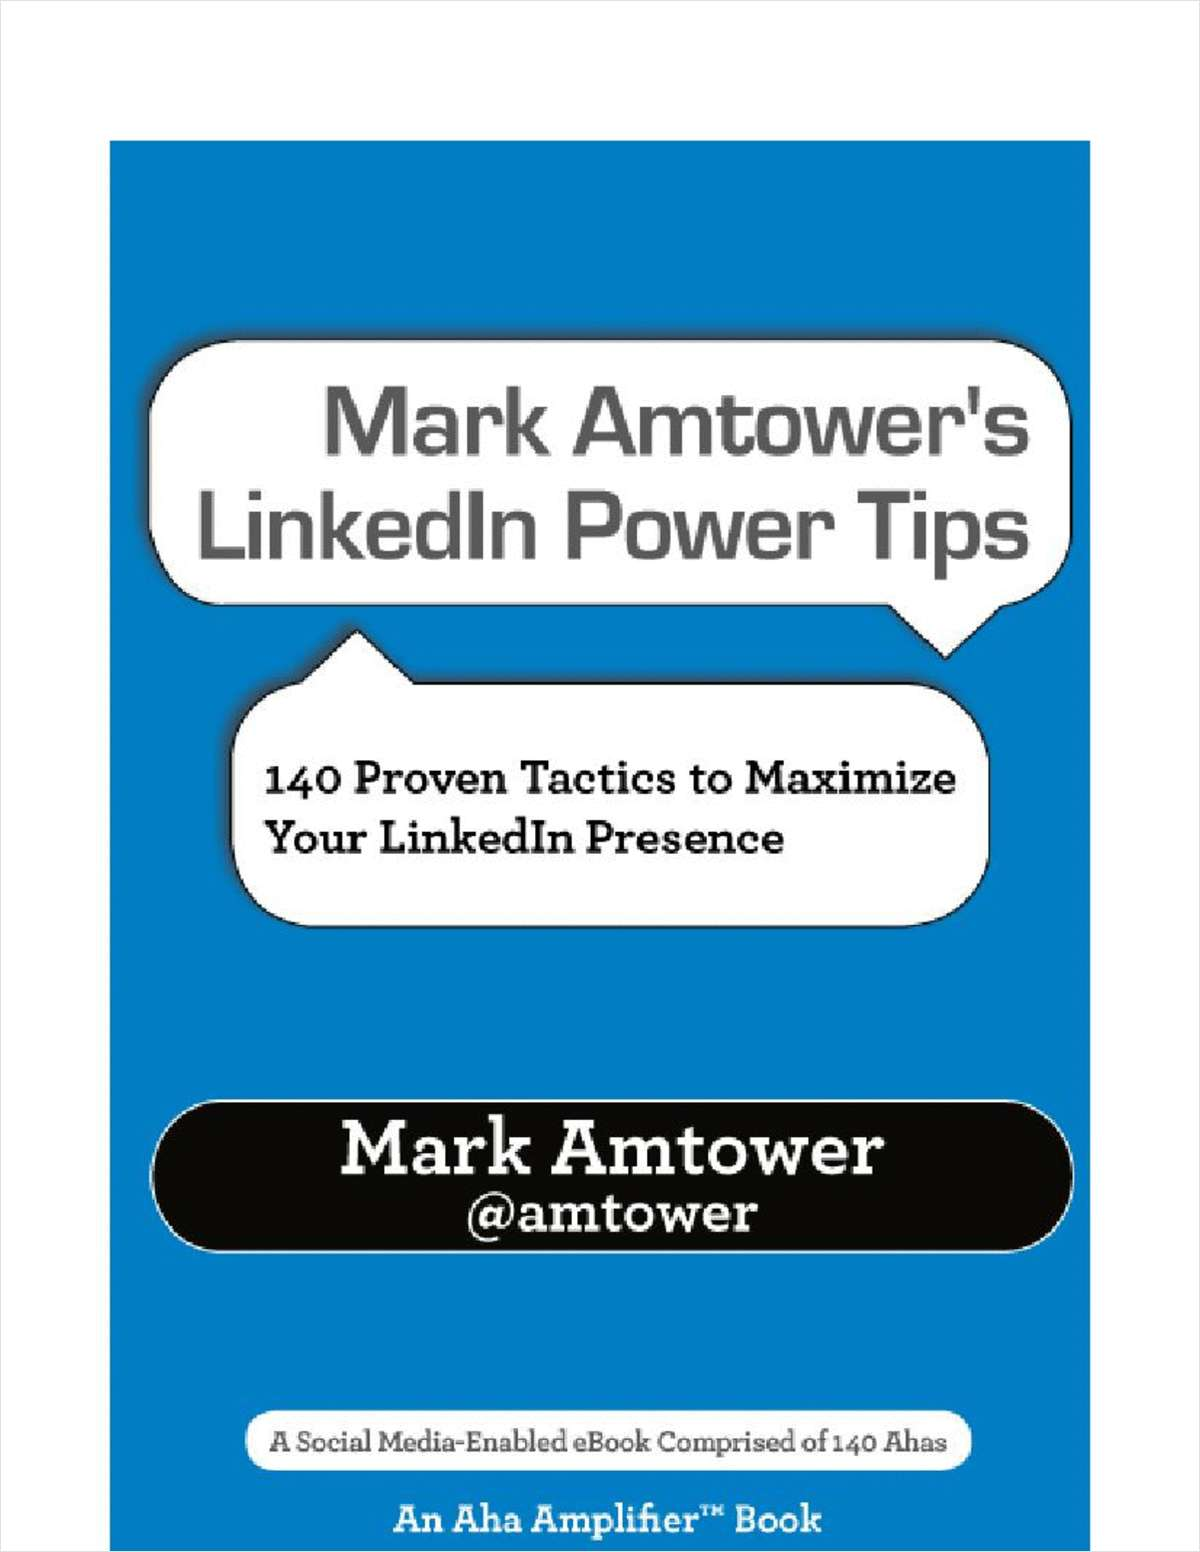 Mark Amtower's LinkedIn Power Tips